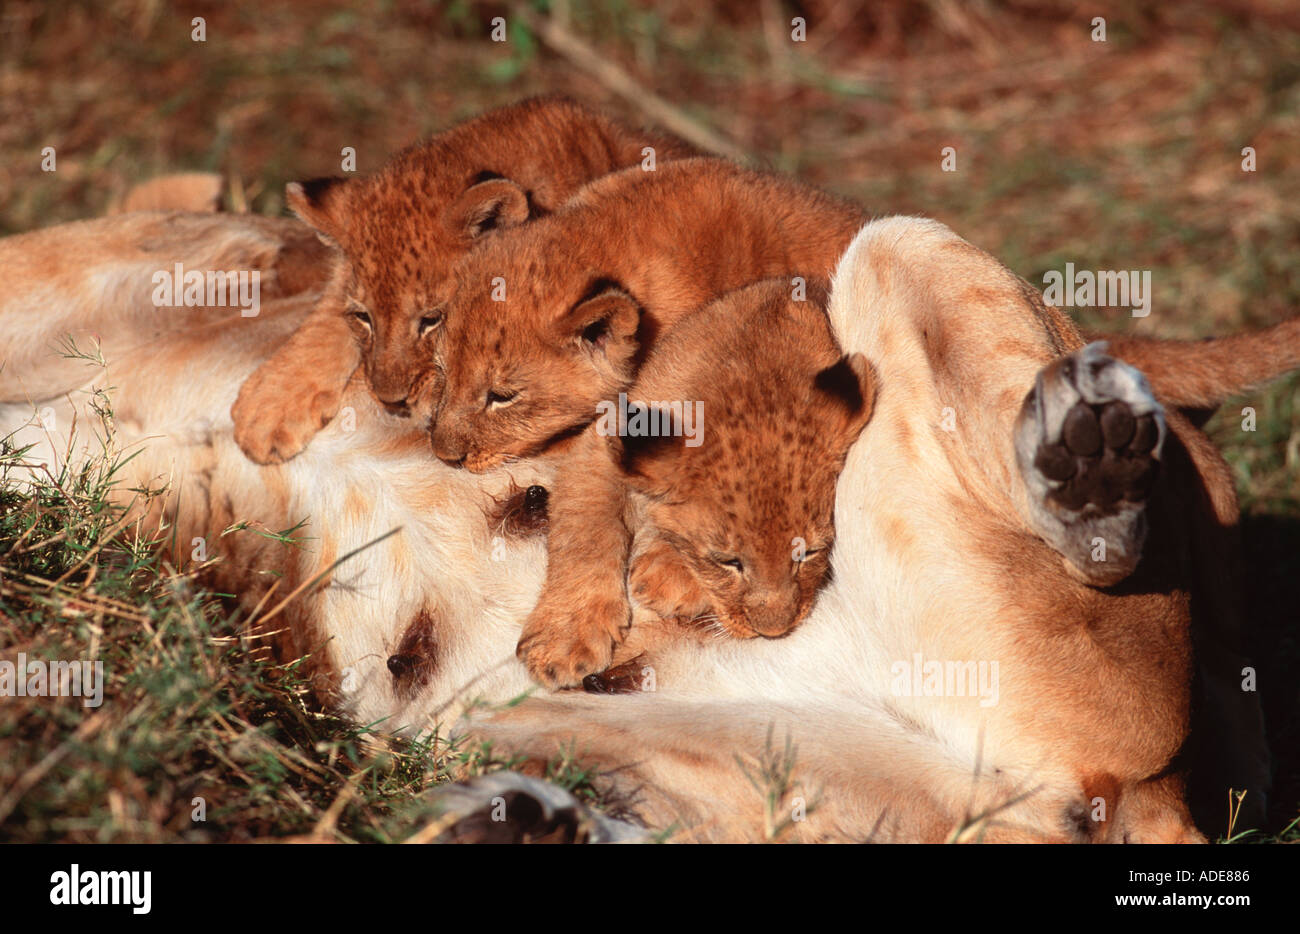 Lion Panthera leo Suckling cubs Africa - Stock Image